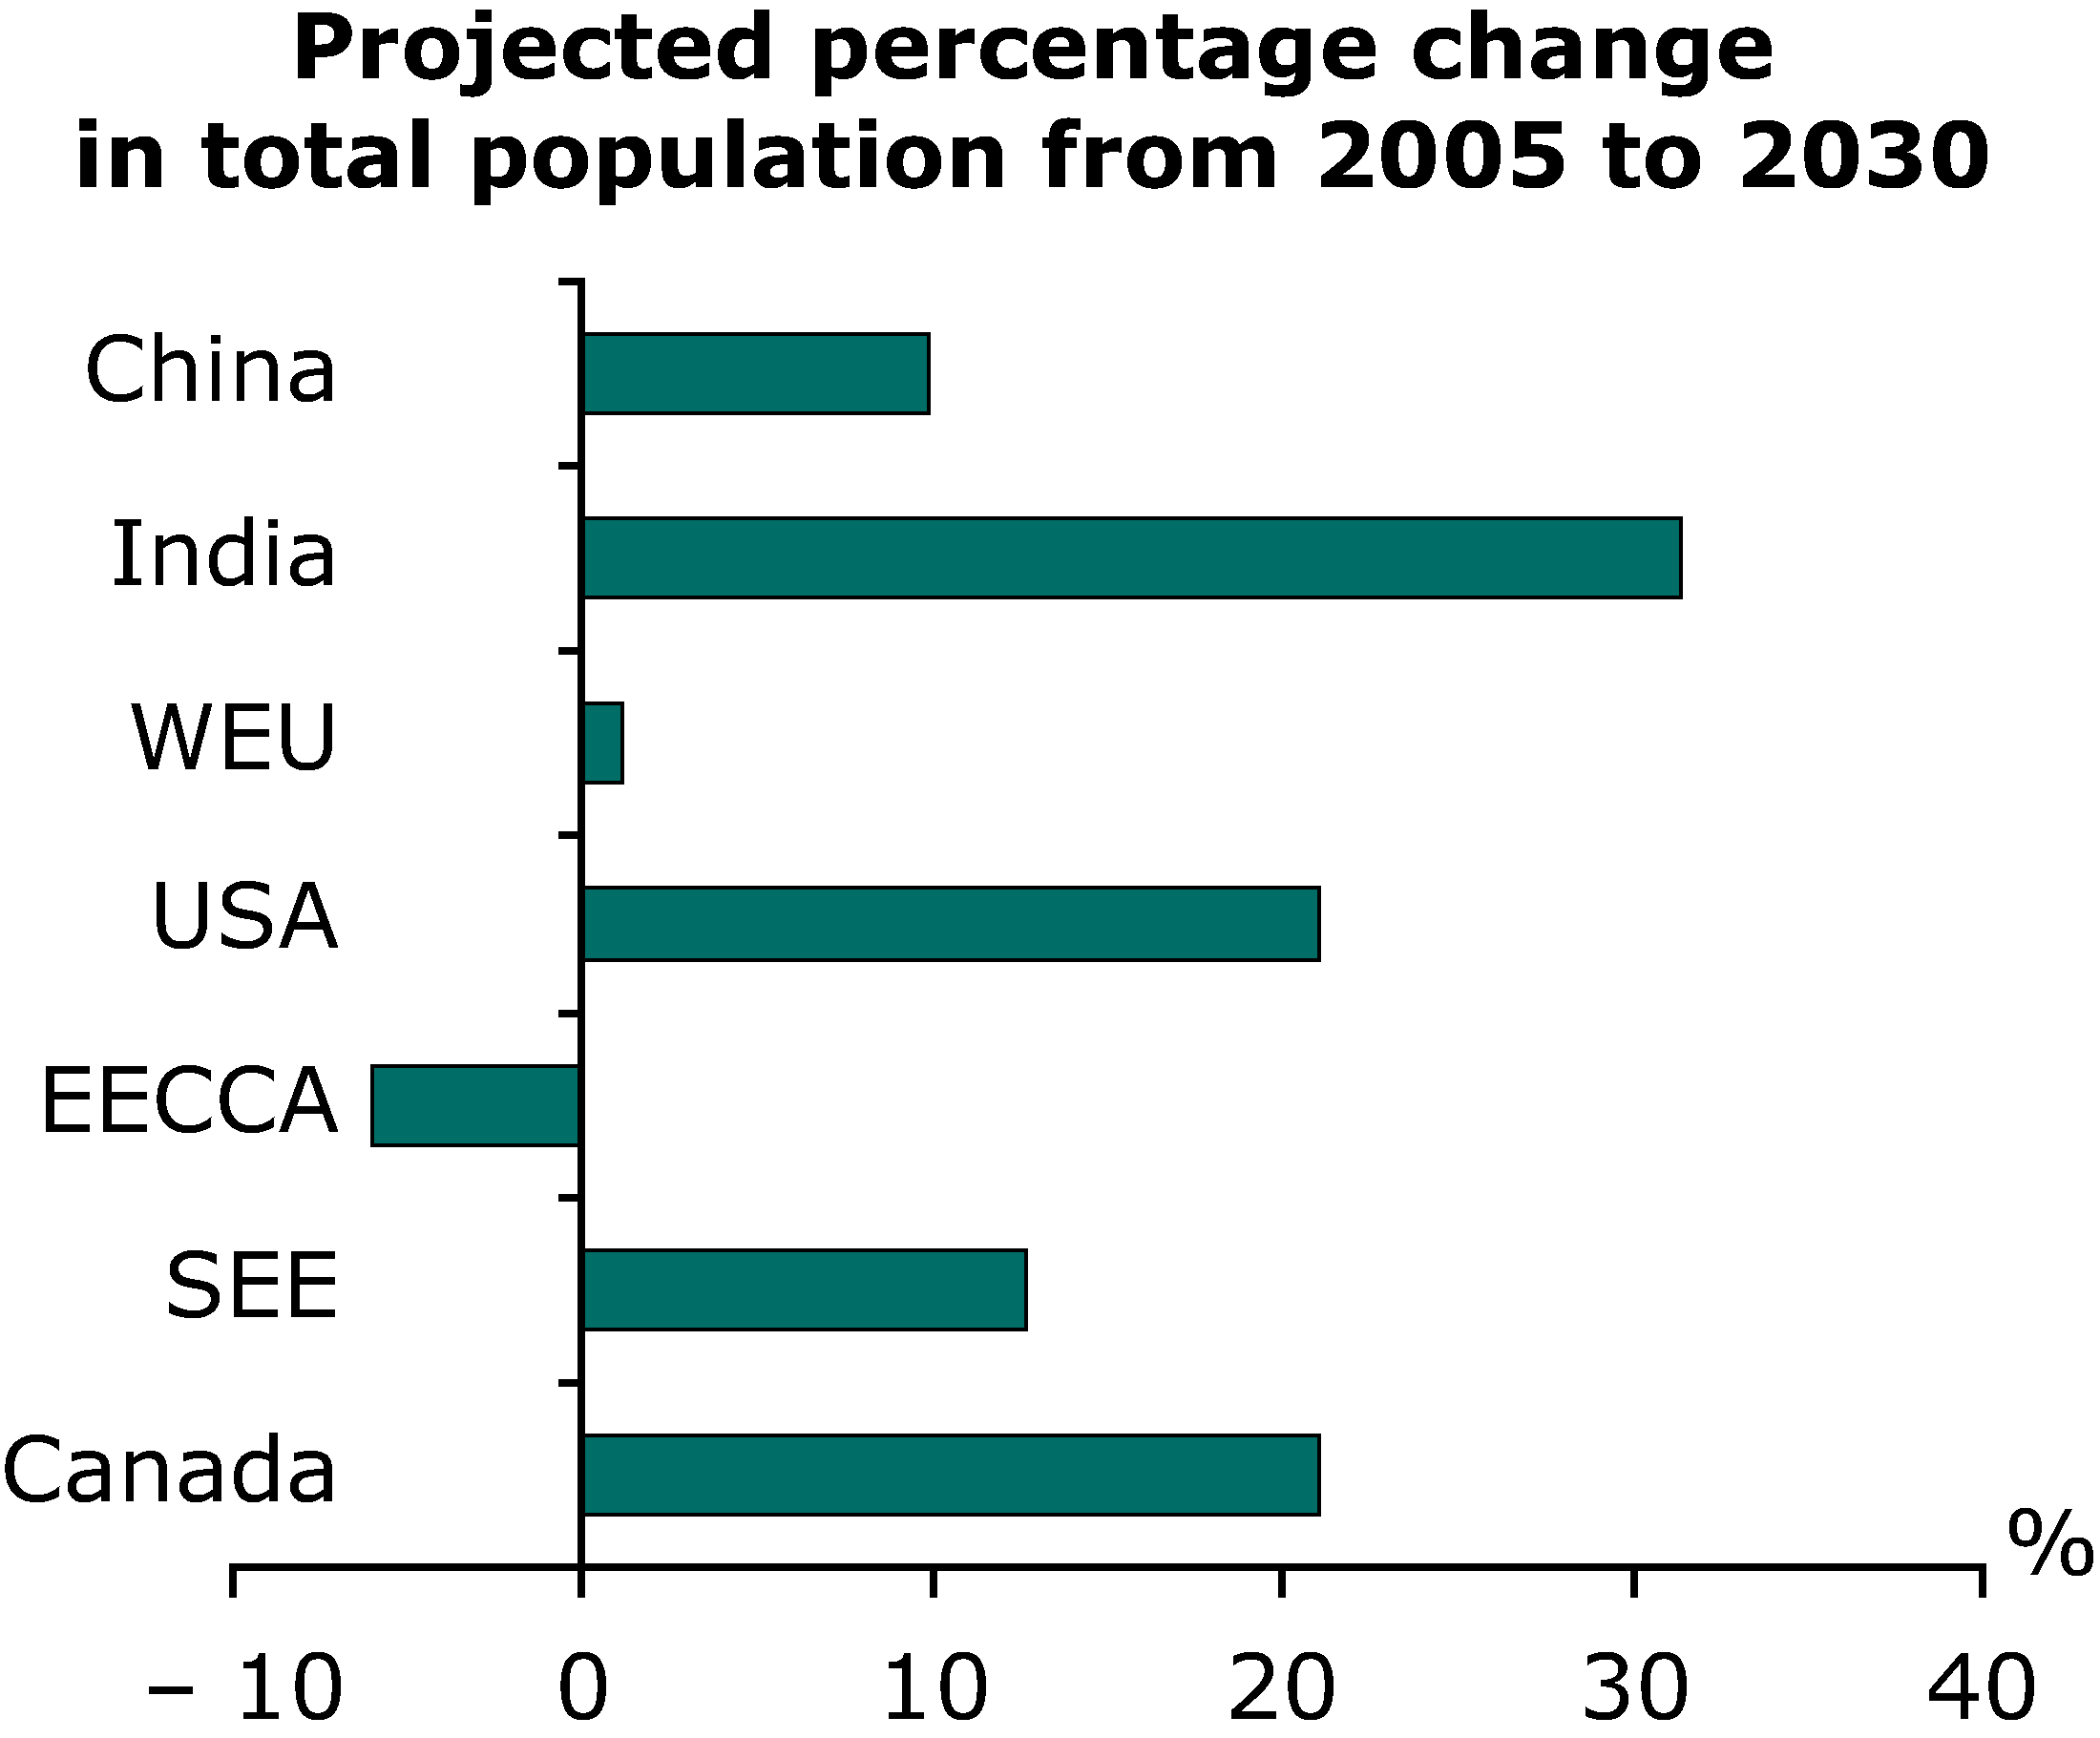 Projected percentage change in total population from 2005 to 2030